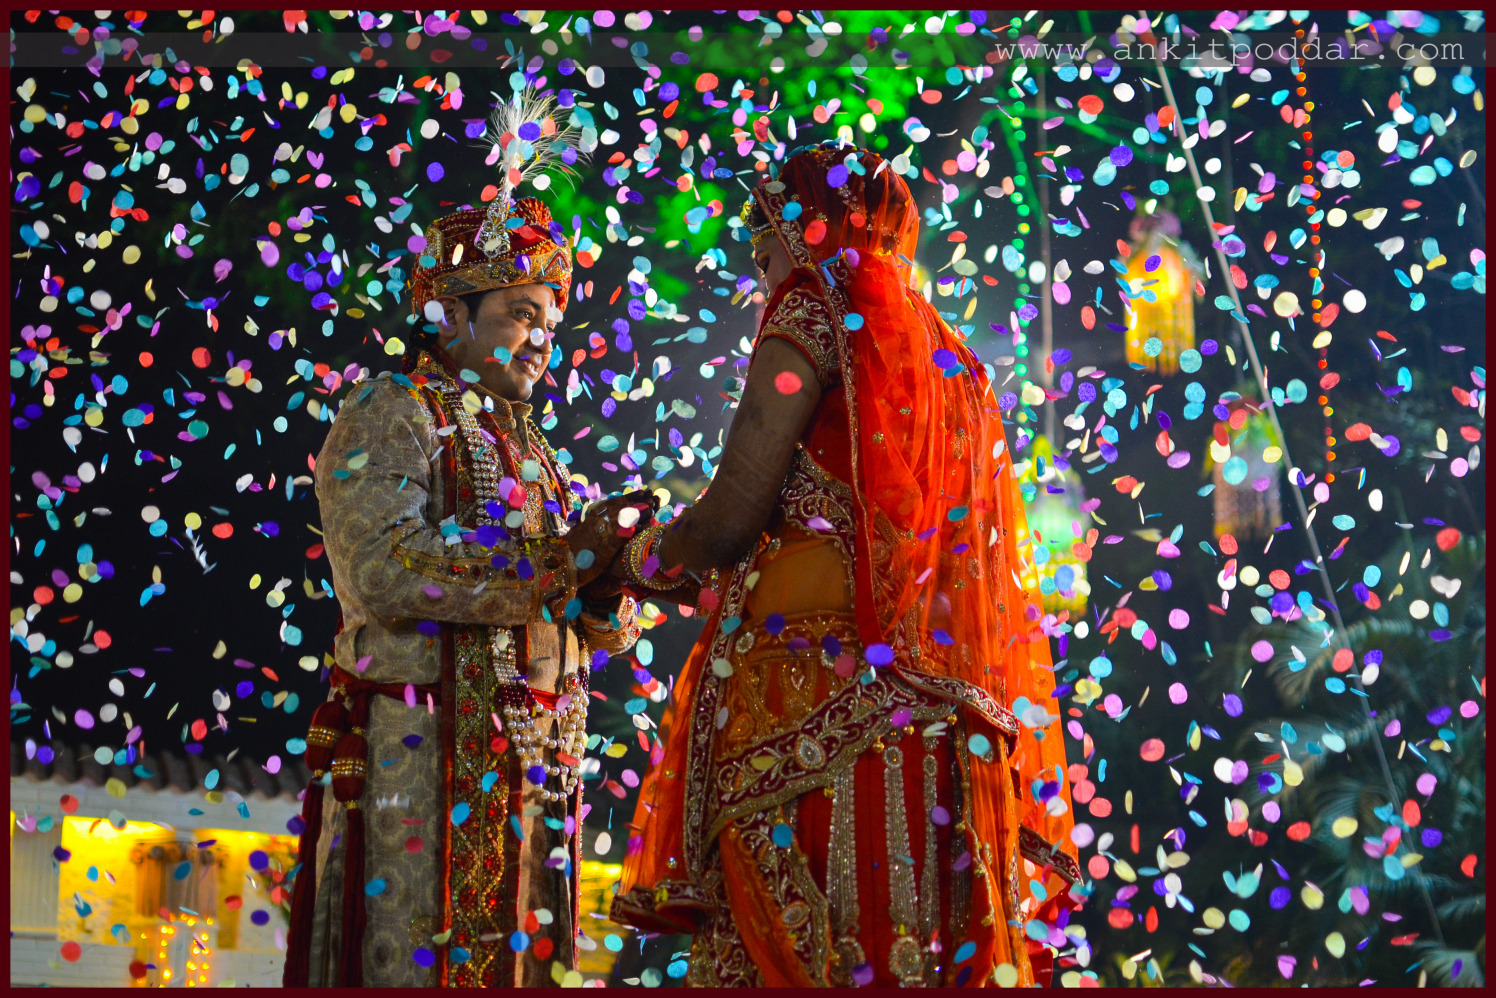 Showers Of Confetti Blessings by Ankit Poddar Wedding-photography | Weddings Photos & Ideas